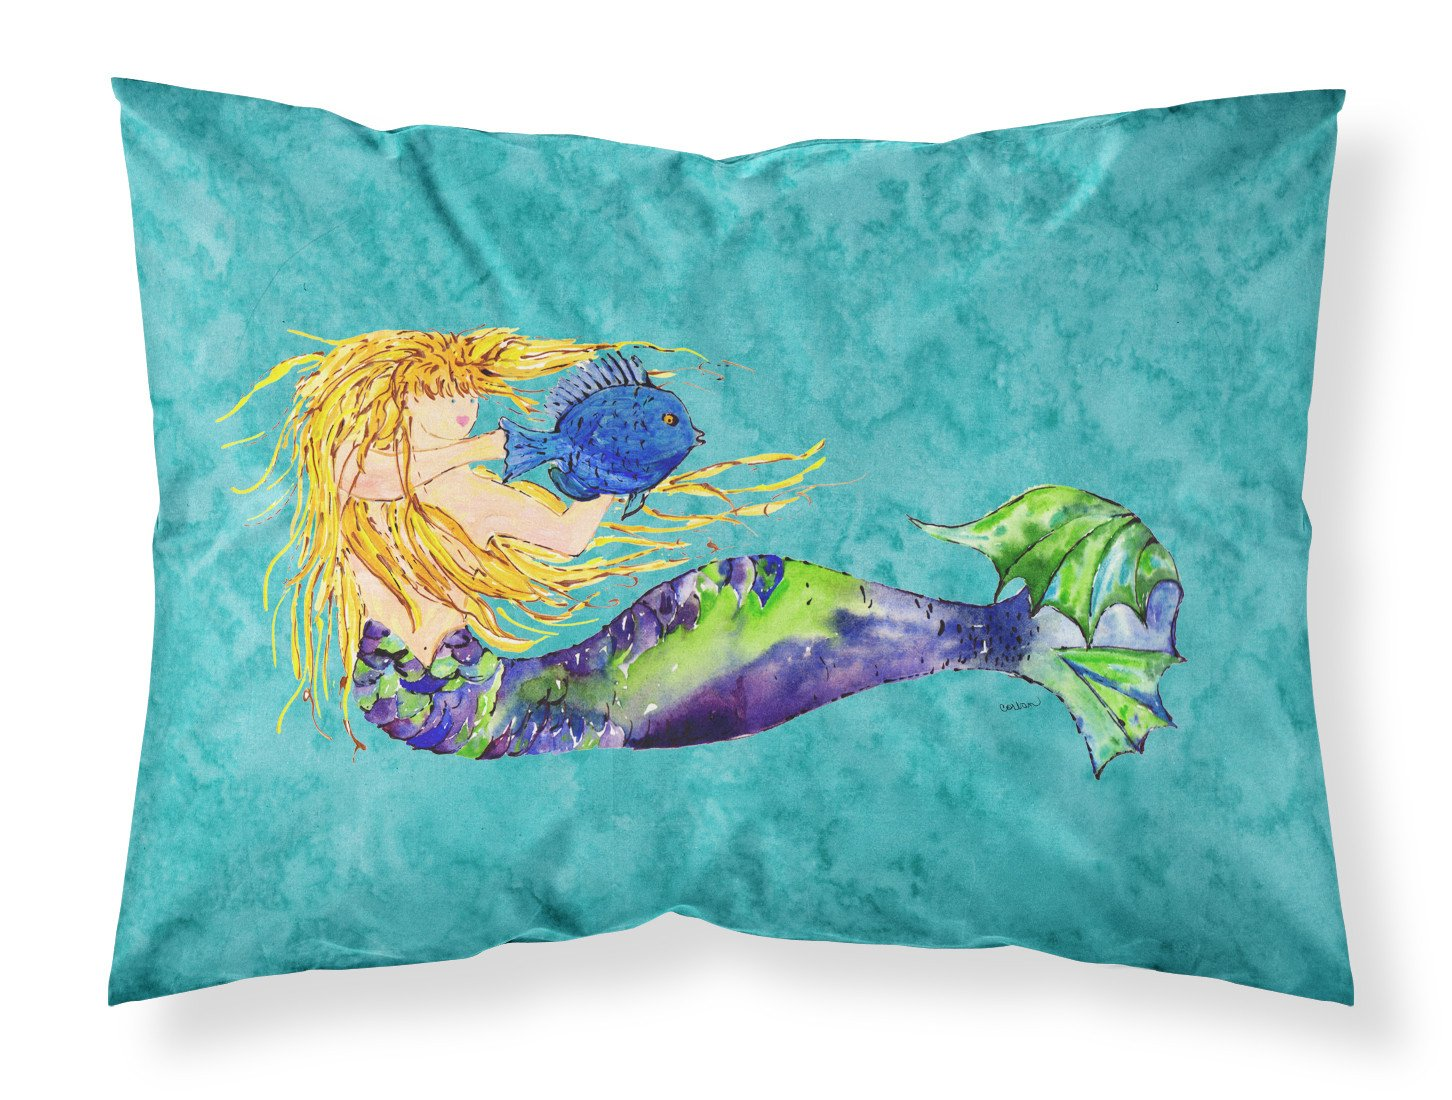 Buy this Blonde Mermaid on Teal Fabric Standard Pillowcase 8724PILLOWCASE